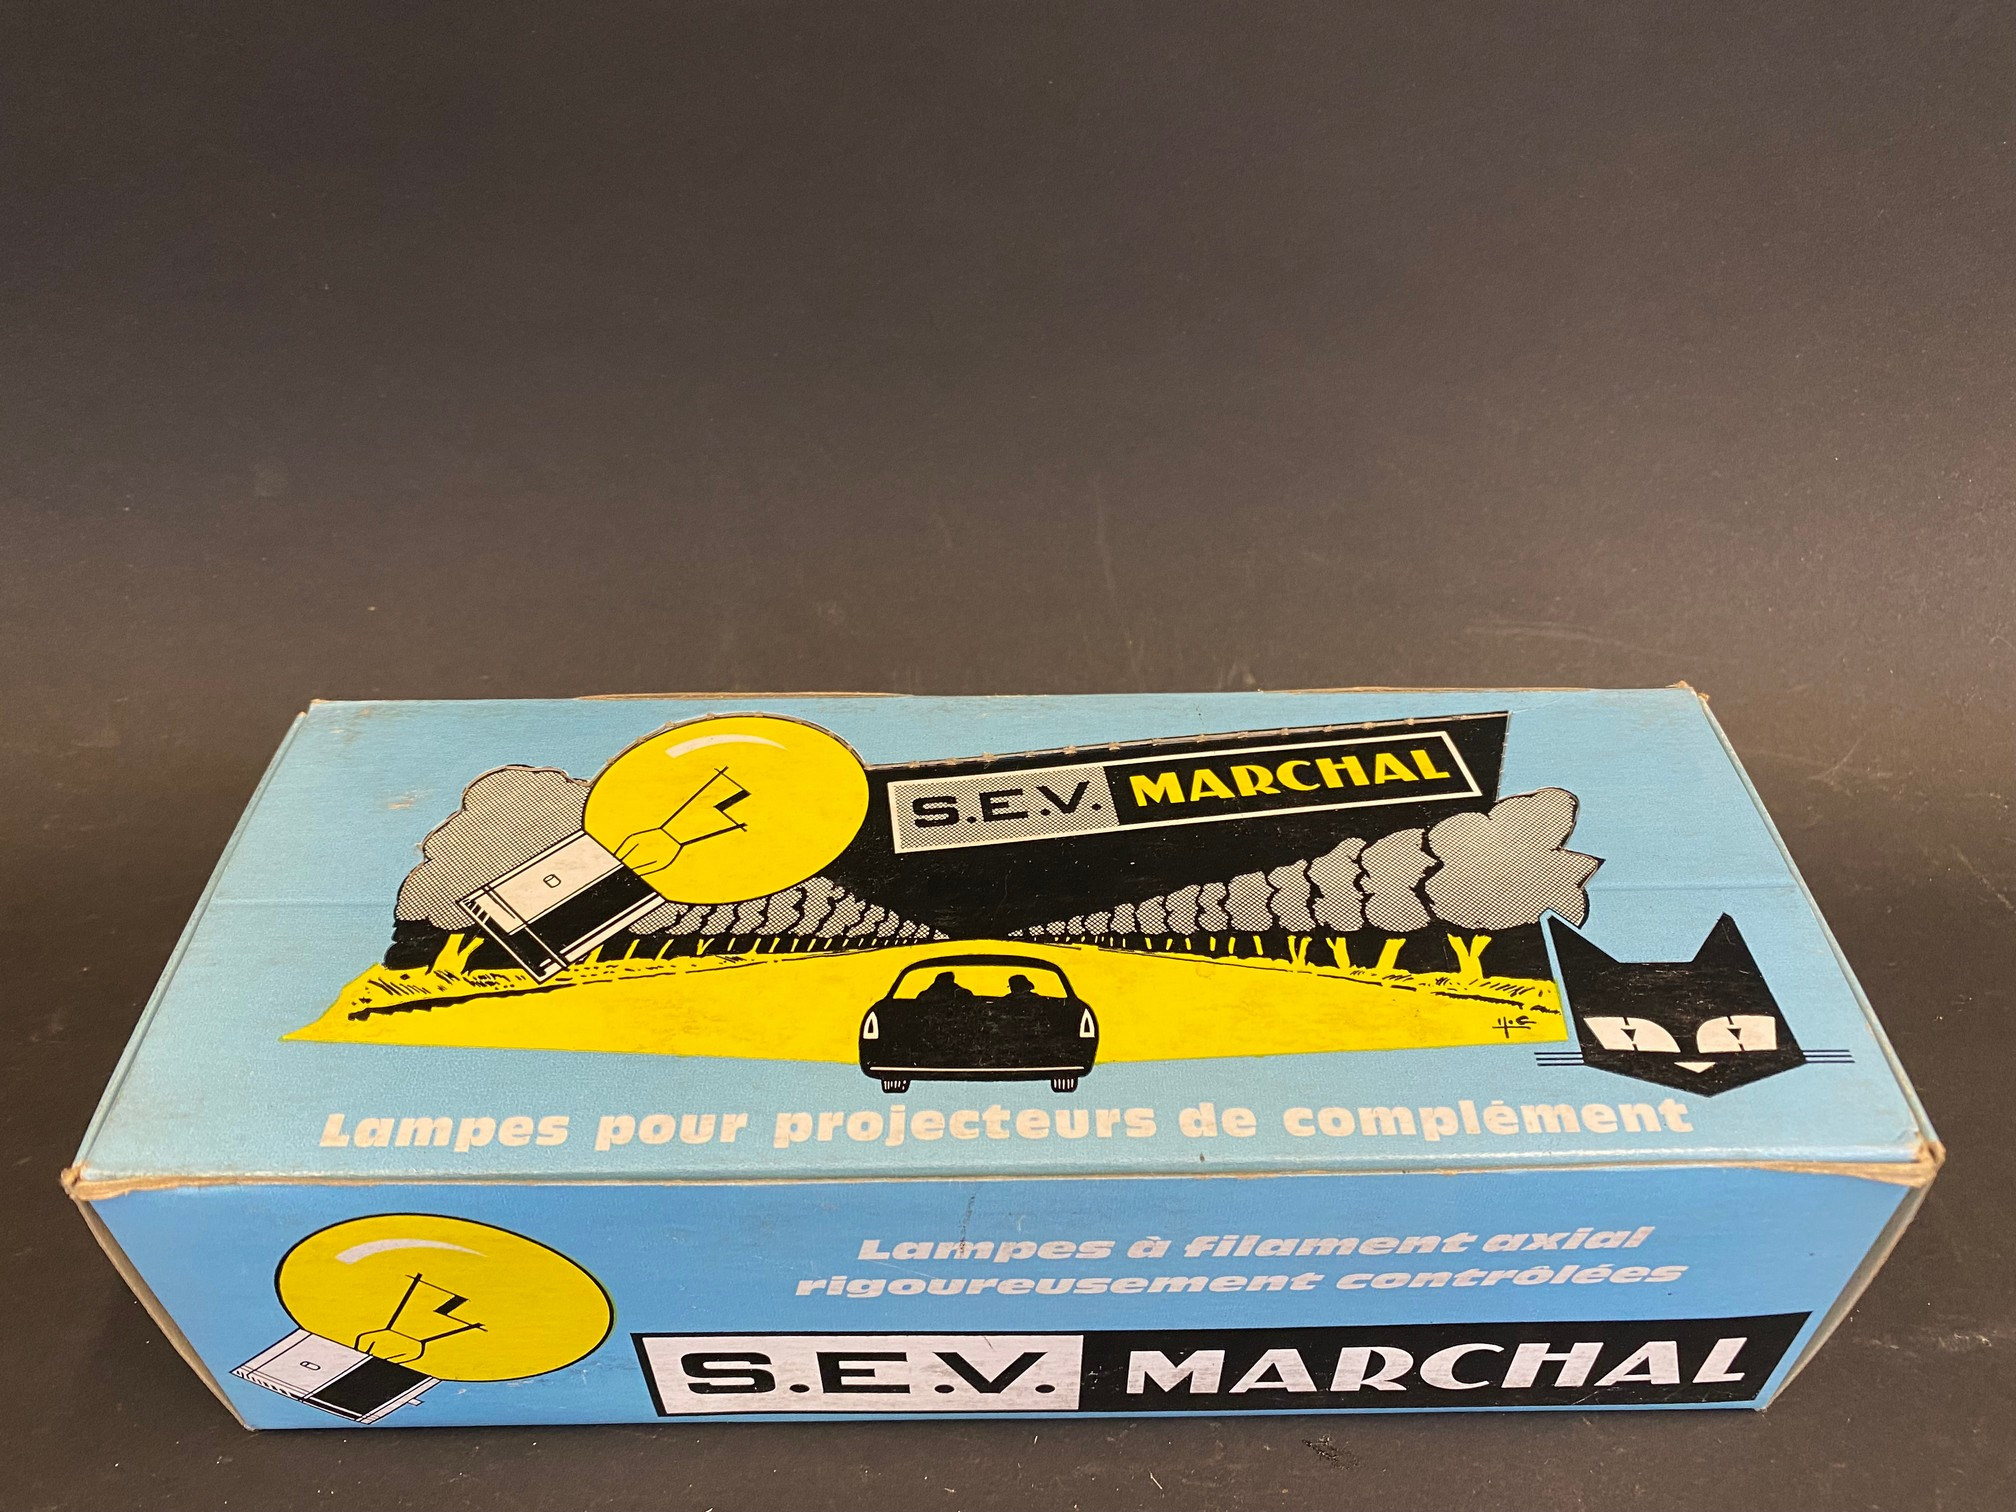 A complete boxed set of S.E.V. Marchal car bulbs, housed in a great advertising display box.